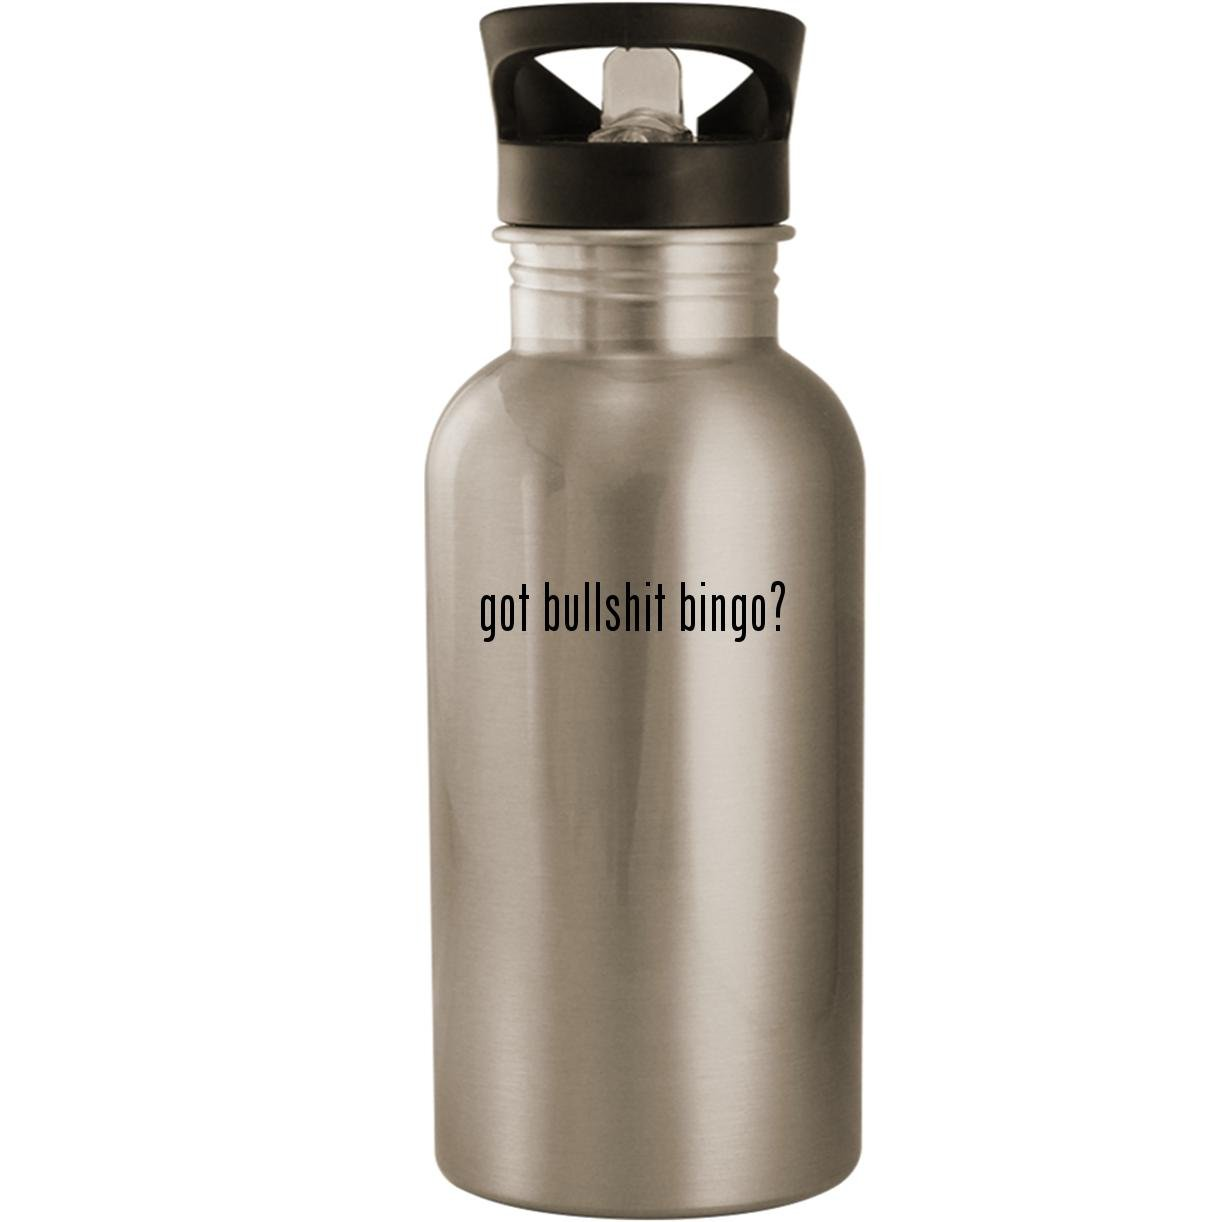 got bullshit bingo? - Stainless Steel 20oz Road Ready Water Bottle, Silver by Molandra Products